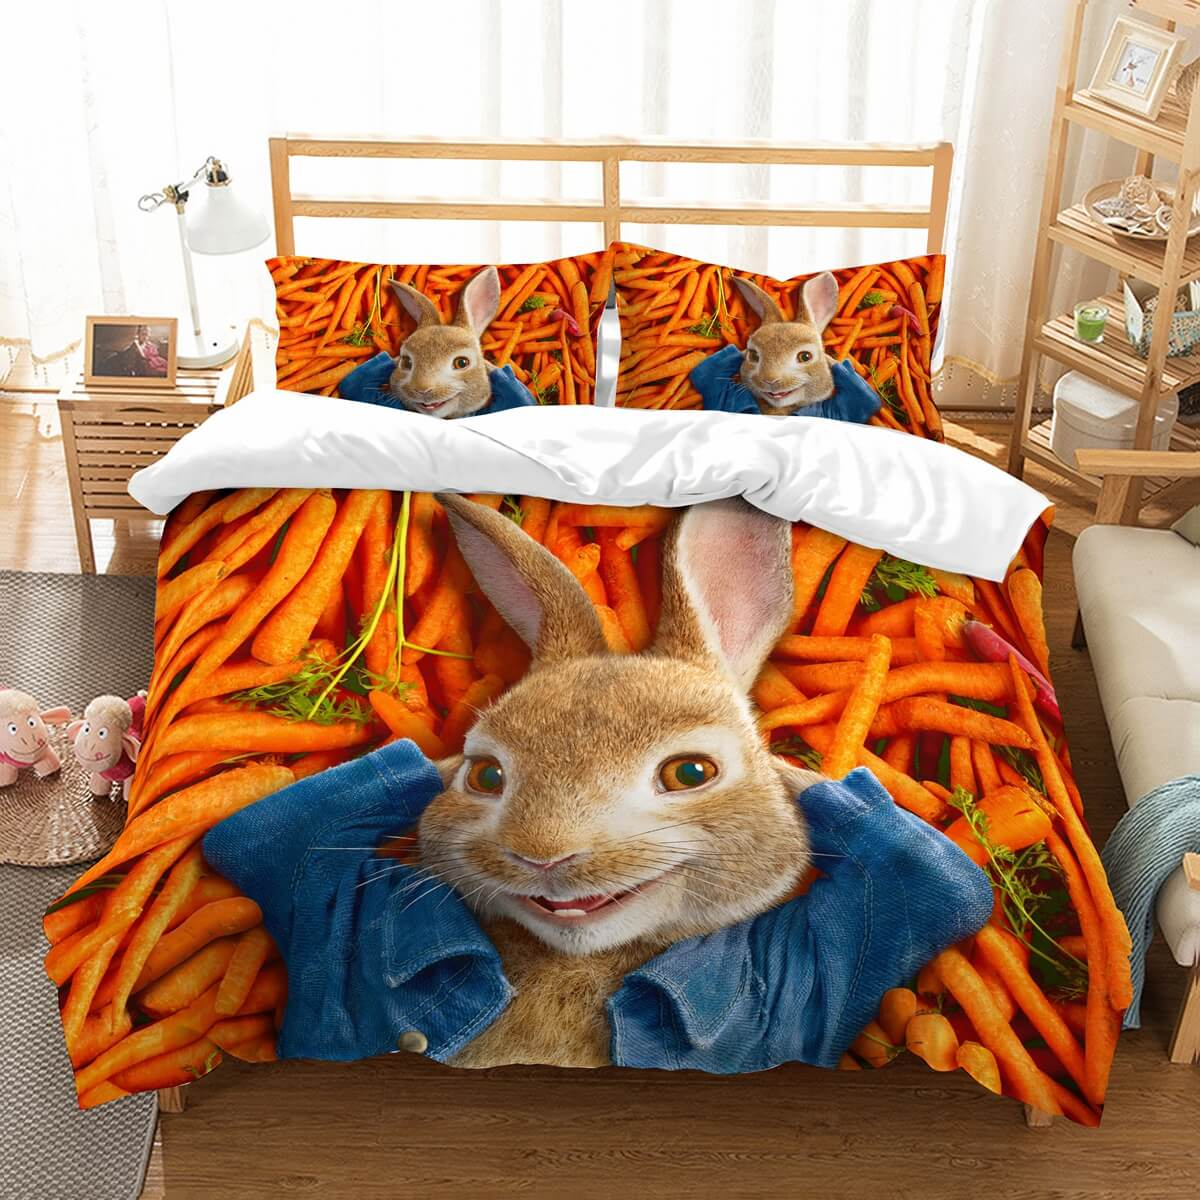 3D Customize Peter Rabbit Bedding Set Duvet Cover Set Bedroom Set Bedlinen